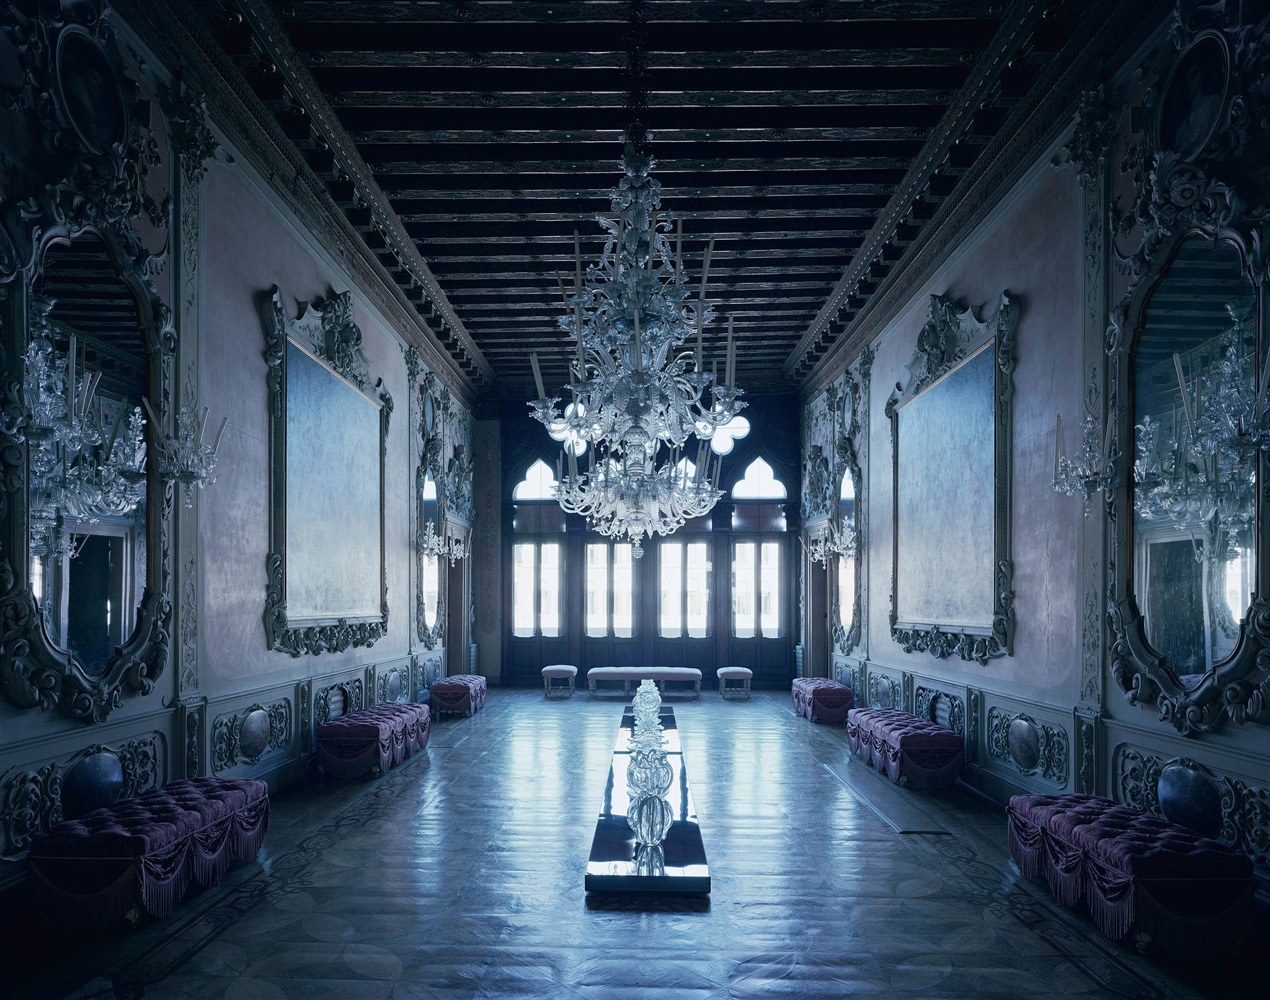 Palazzo Giustinian Dalle Zogie, Venice, Italy, 2016, by David Leventi. Archive print of an interior palace room, mounted to Dibond